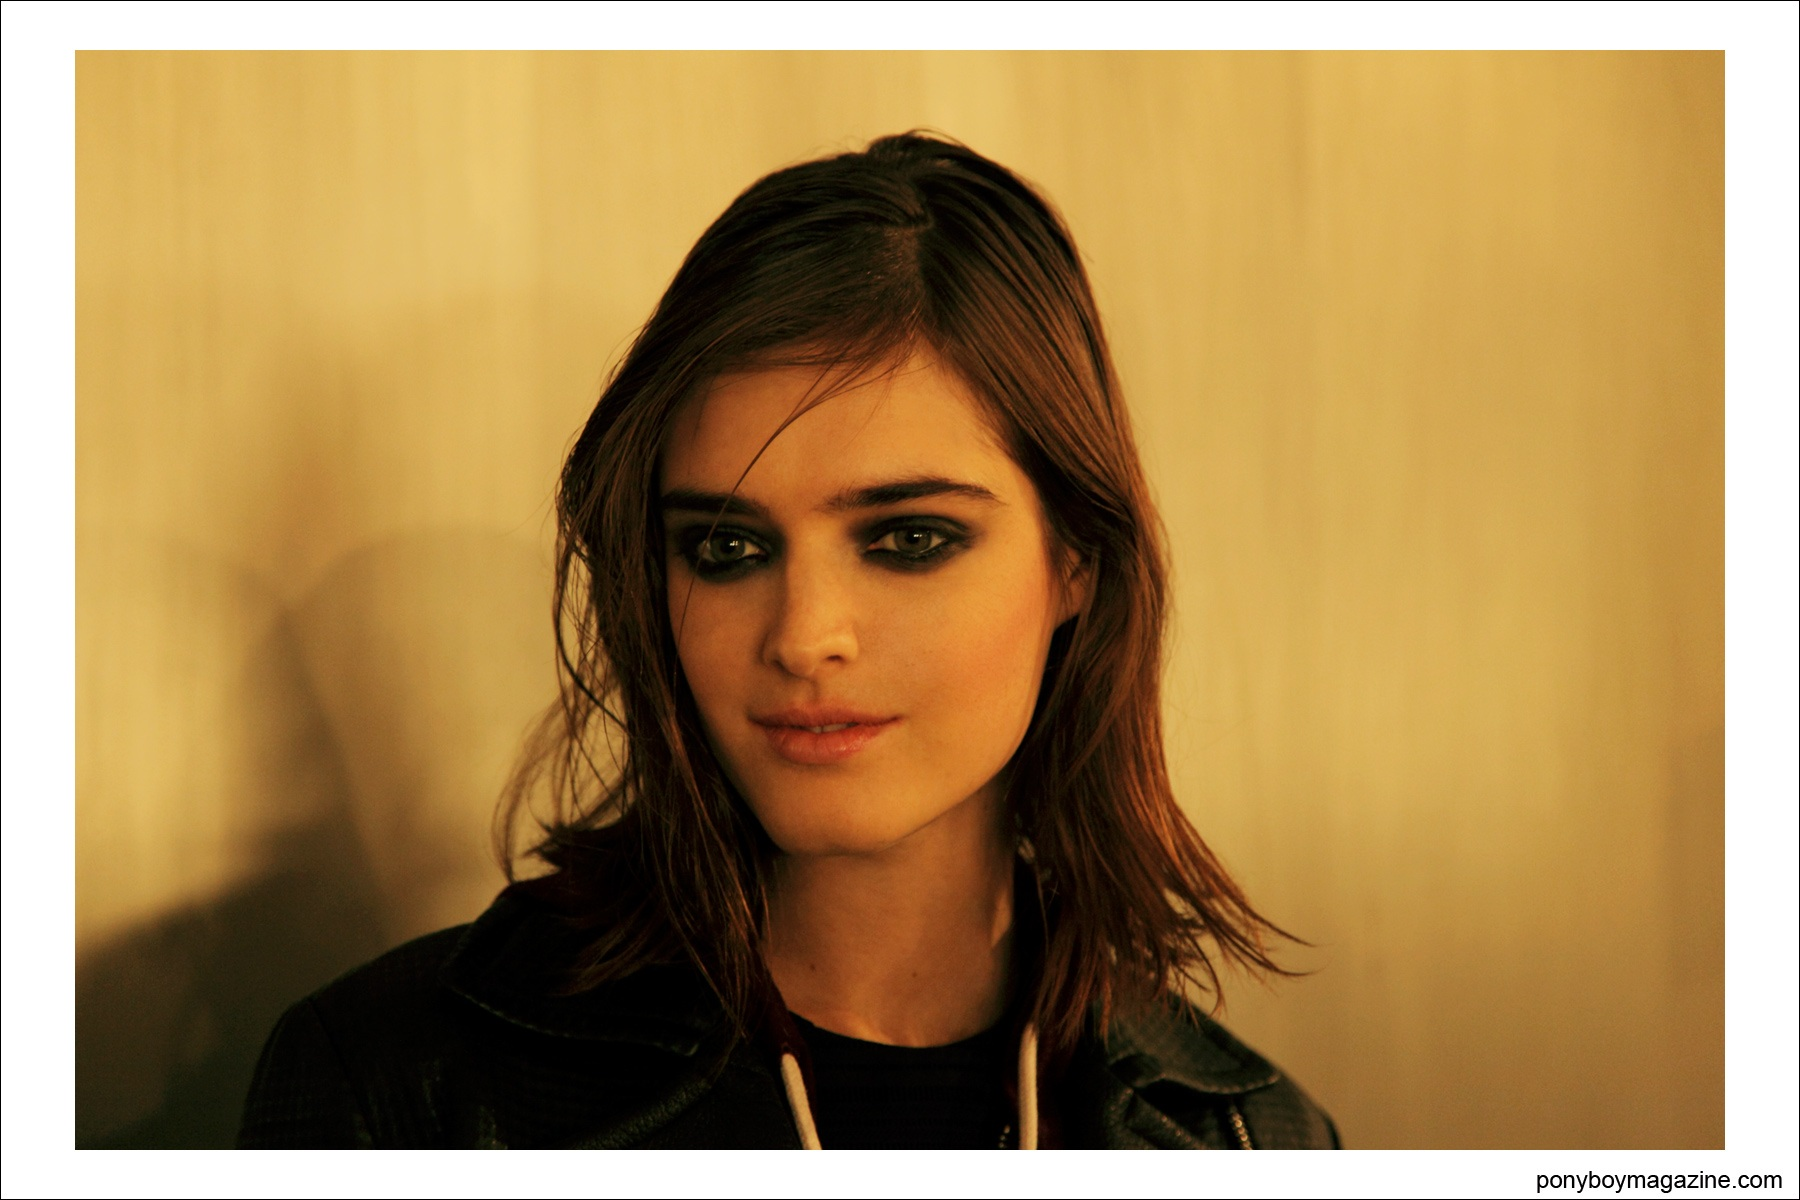 Backstage at Sophie Theallet, photographed by Alexander Thompson for Ponyboy Magazine.